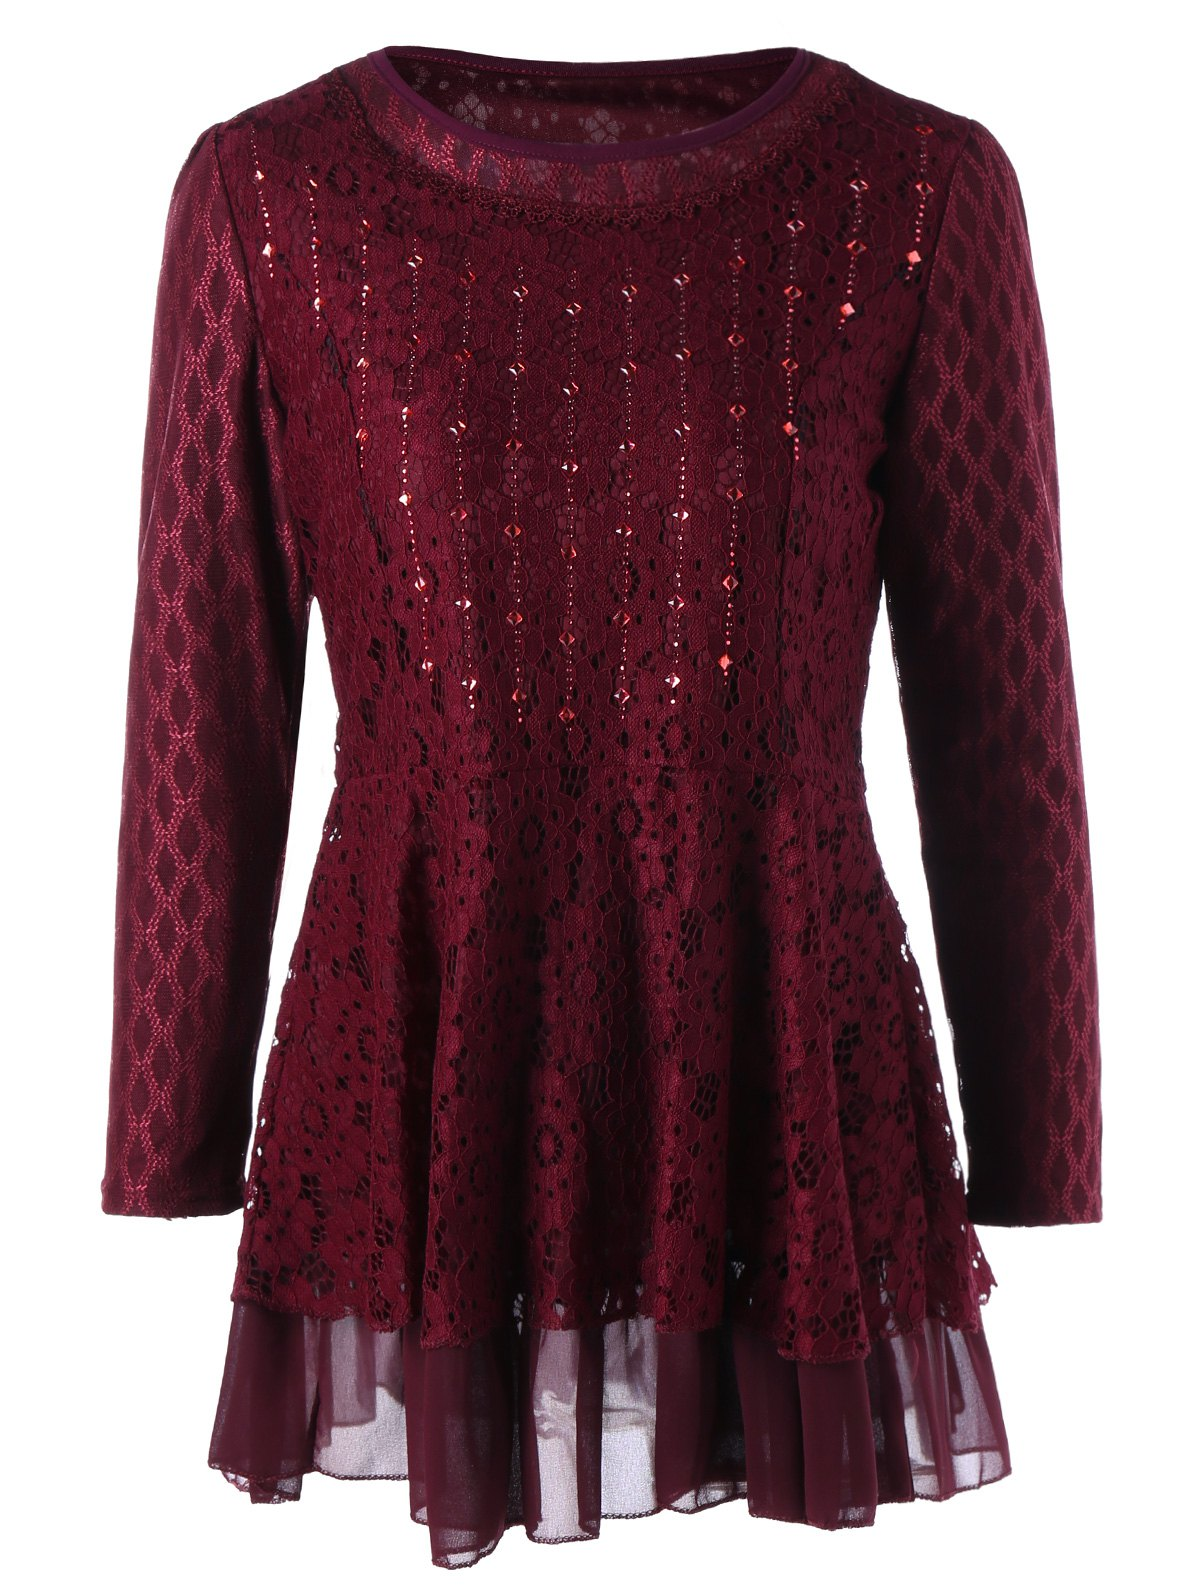 Trendy Plus Size Embellished Lace Layered Peplum Top